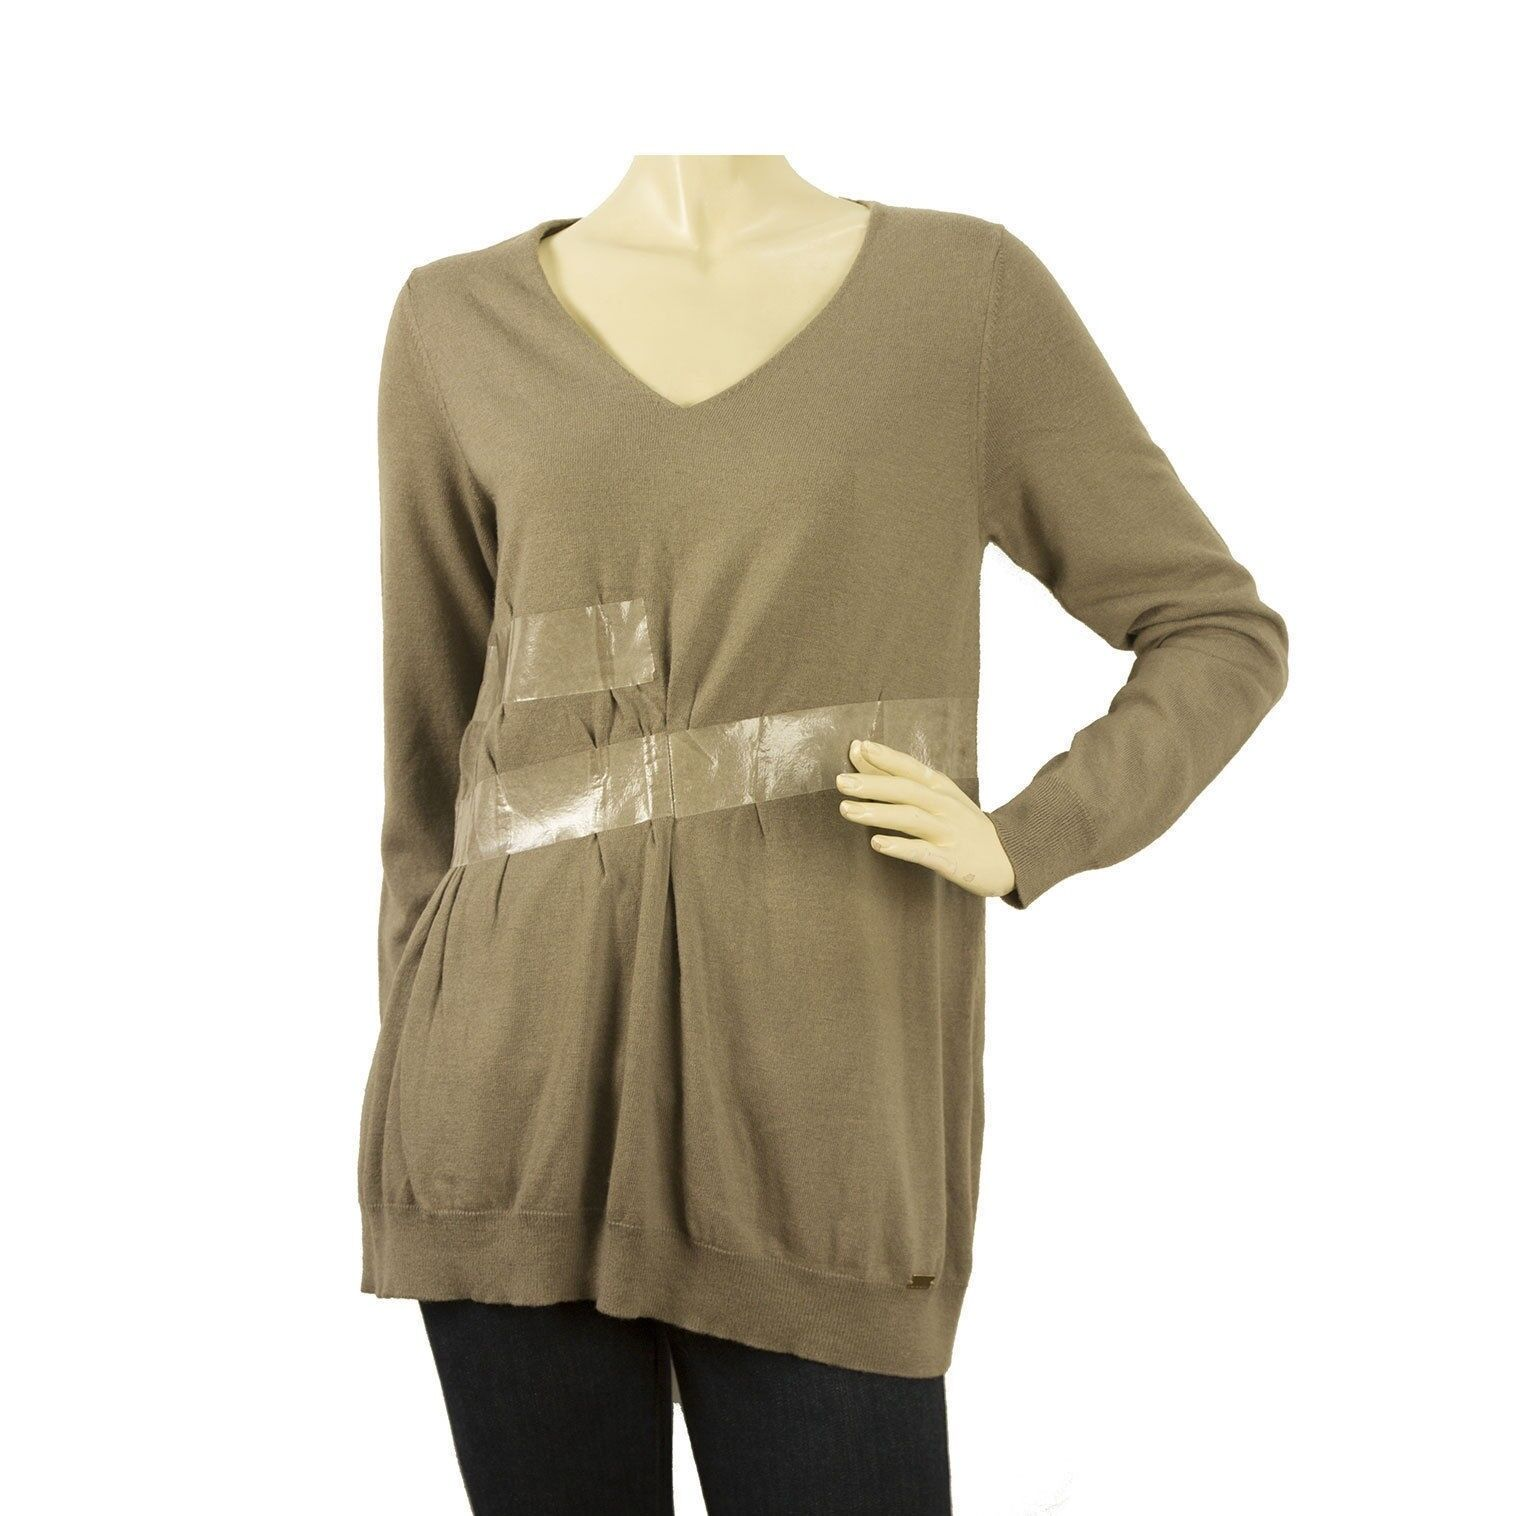 Atos Lombardini Taupe OverGrößed Wolle Knit oben Lange Sleeve Sweater wιth tape fx